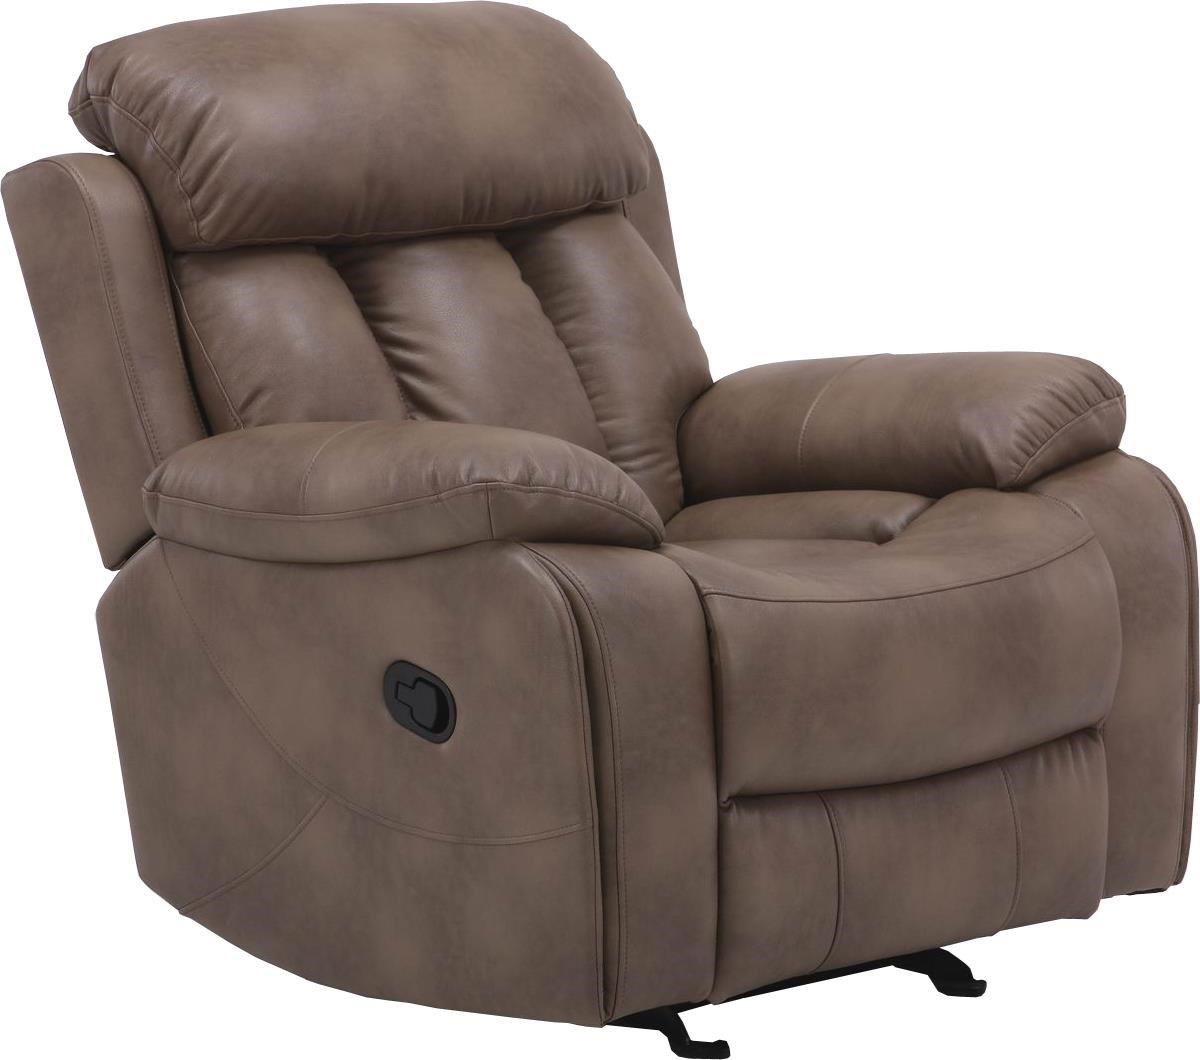 Parker House Baron Power Recliner - Item Number: 000379518